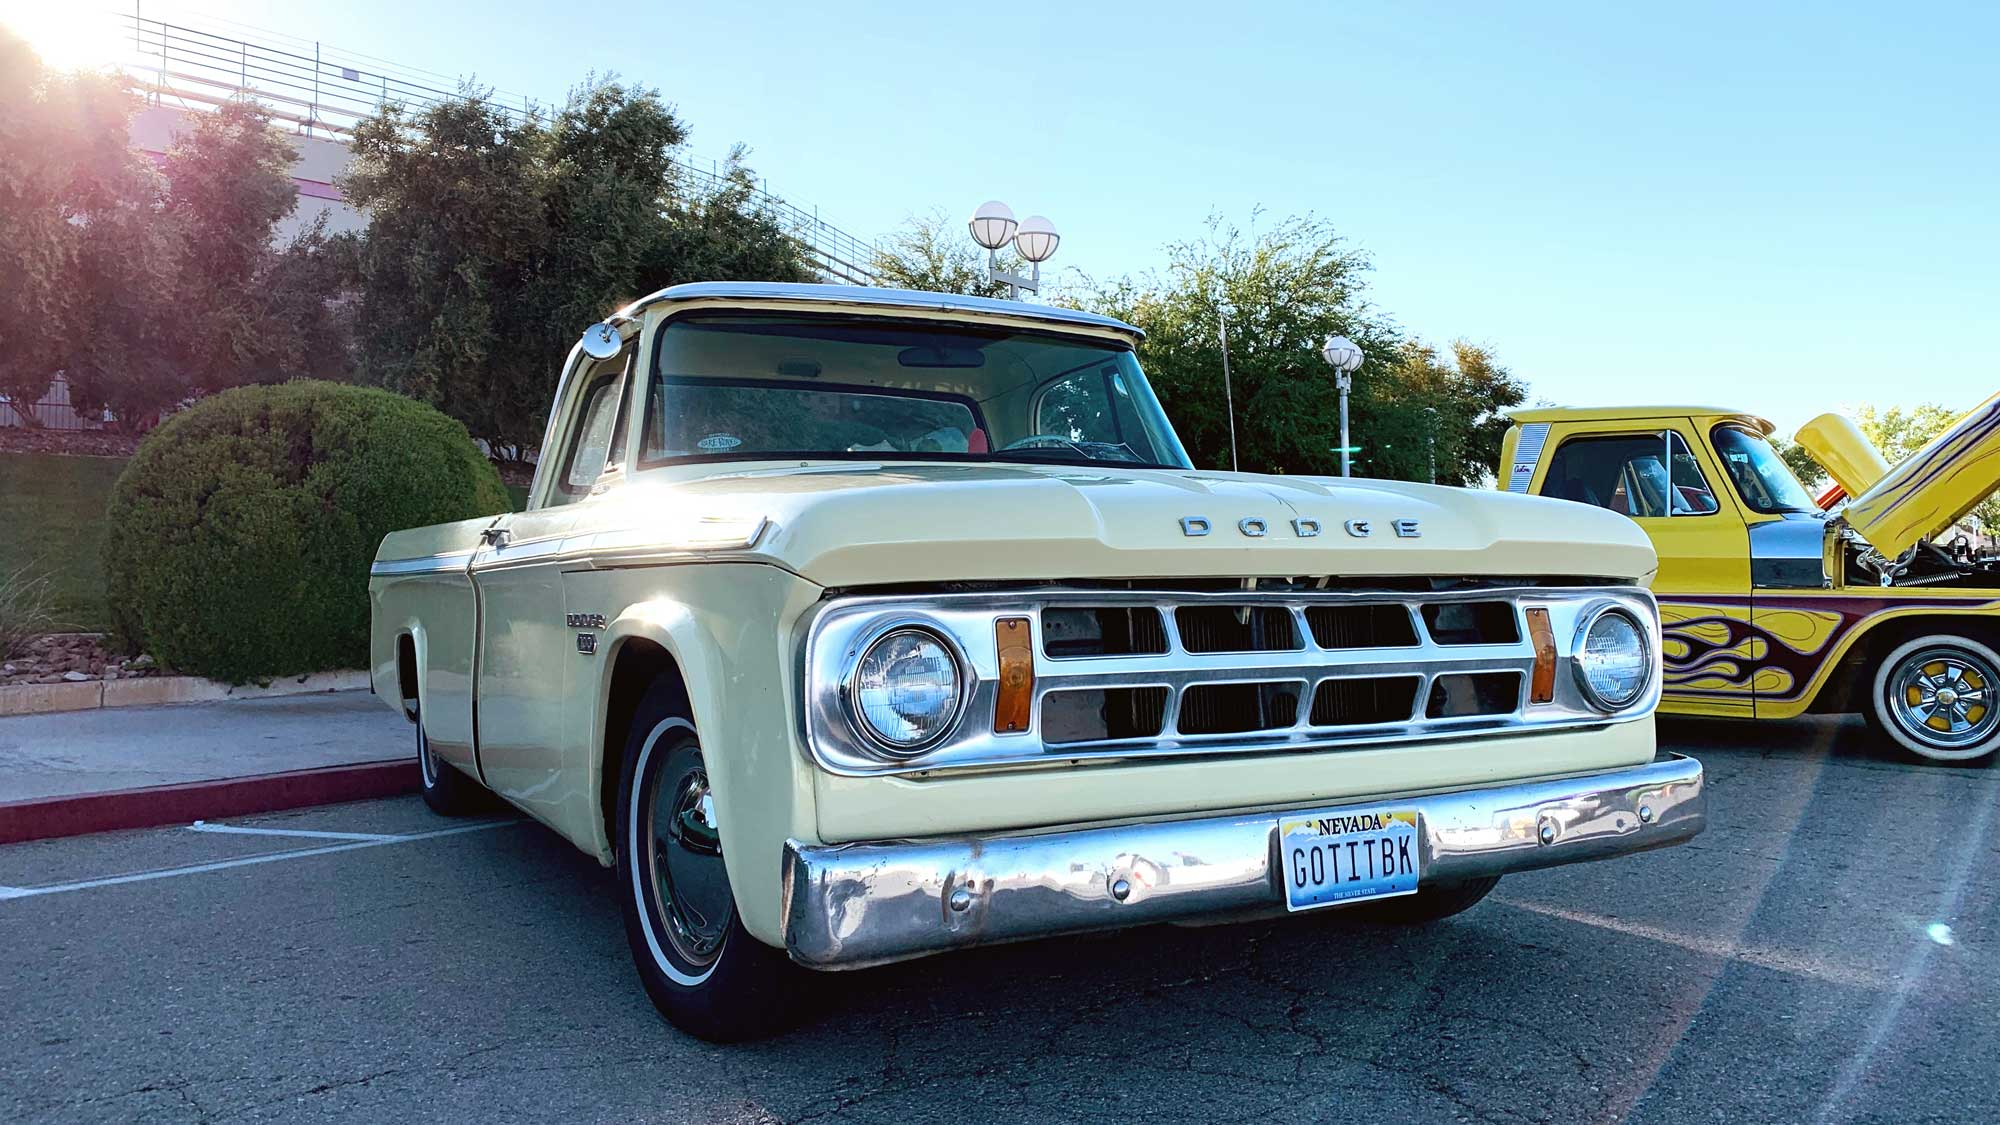 The Real Joey Bag of Donuts - 1968 Dodge D100 from Bare Bones CC